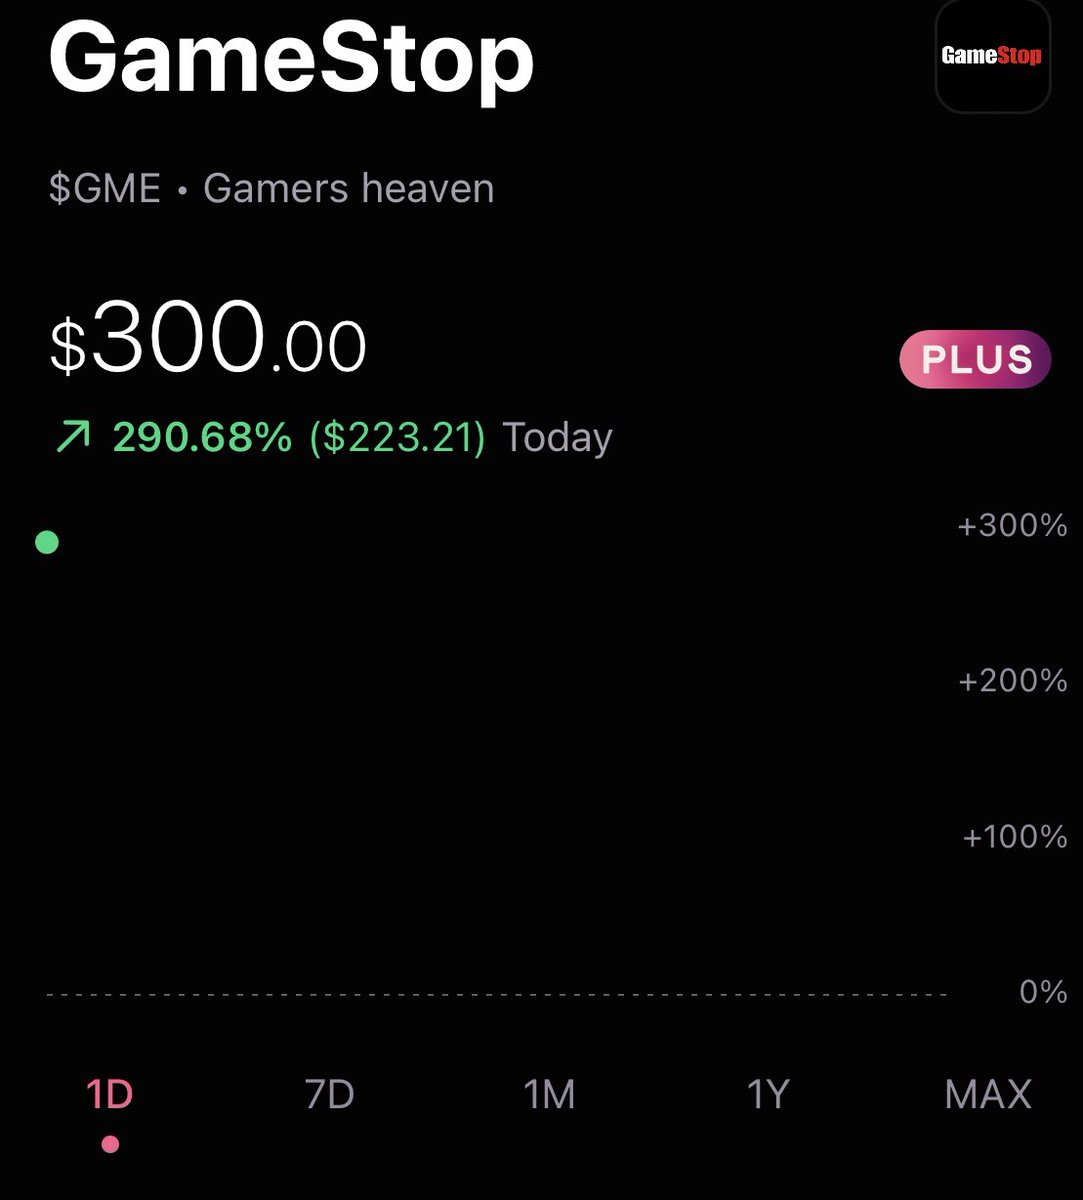 #wallstreetbets got banned because of pumping $gme and $amc. The new Discord server everyone joined has 200,000 members and pumps cryptocurrencies, which is legal. They pump on a weekly basis: